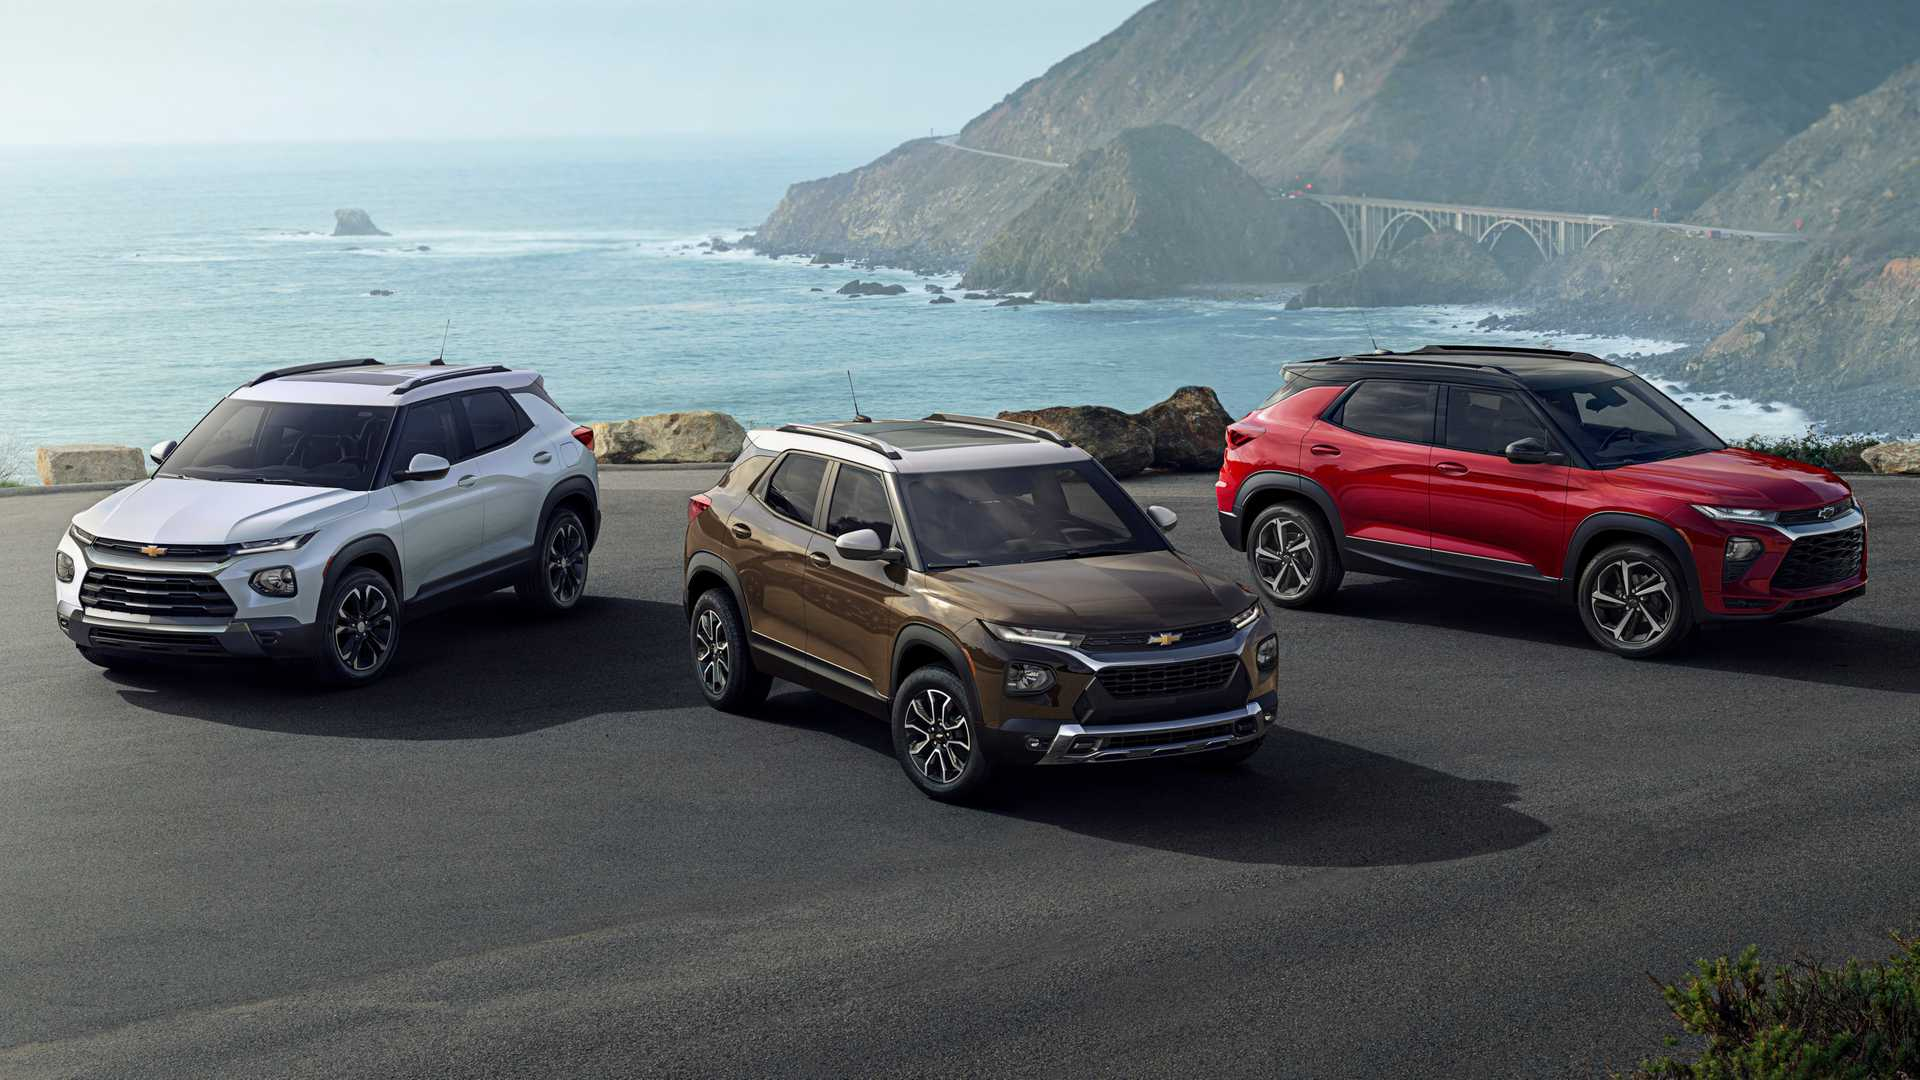 2021 Chevy Trailblazer Arrives At Dealers In Q1 2020 At Is The 2021 Chevy Blazer Out Yet